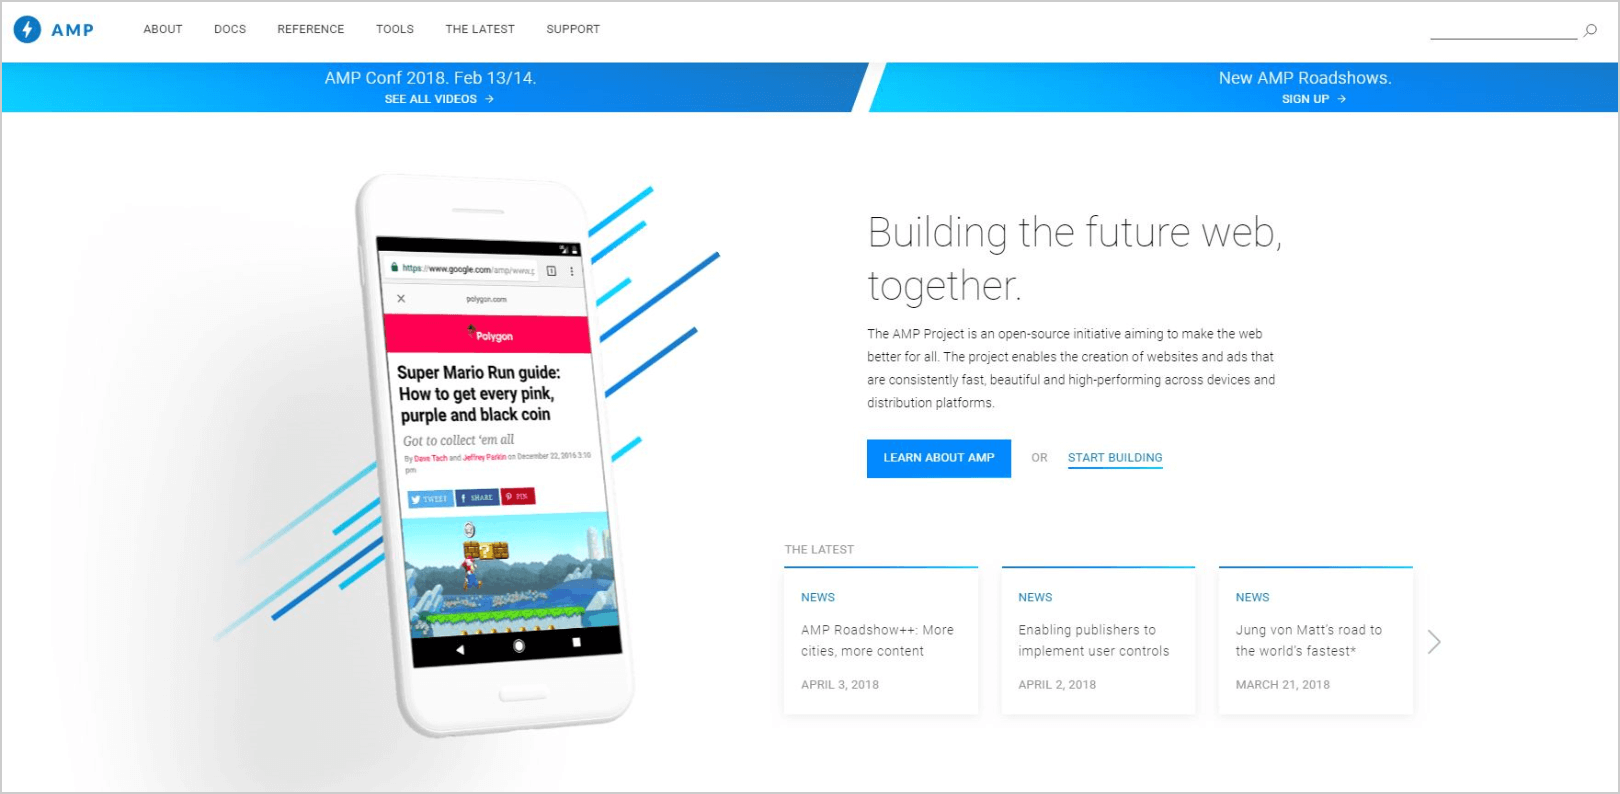 AMP - The future of the web